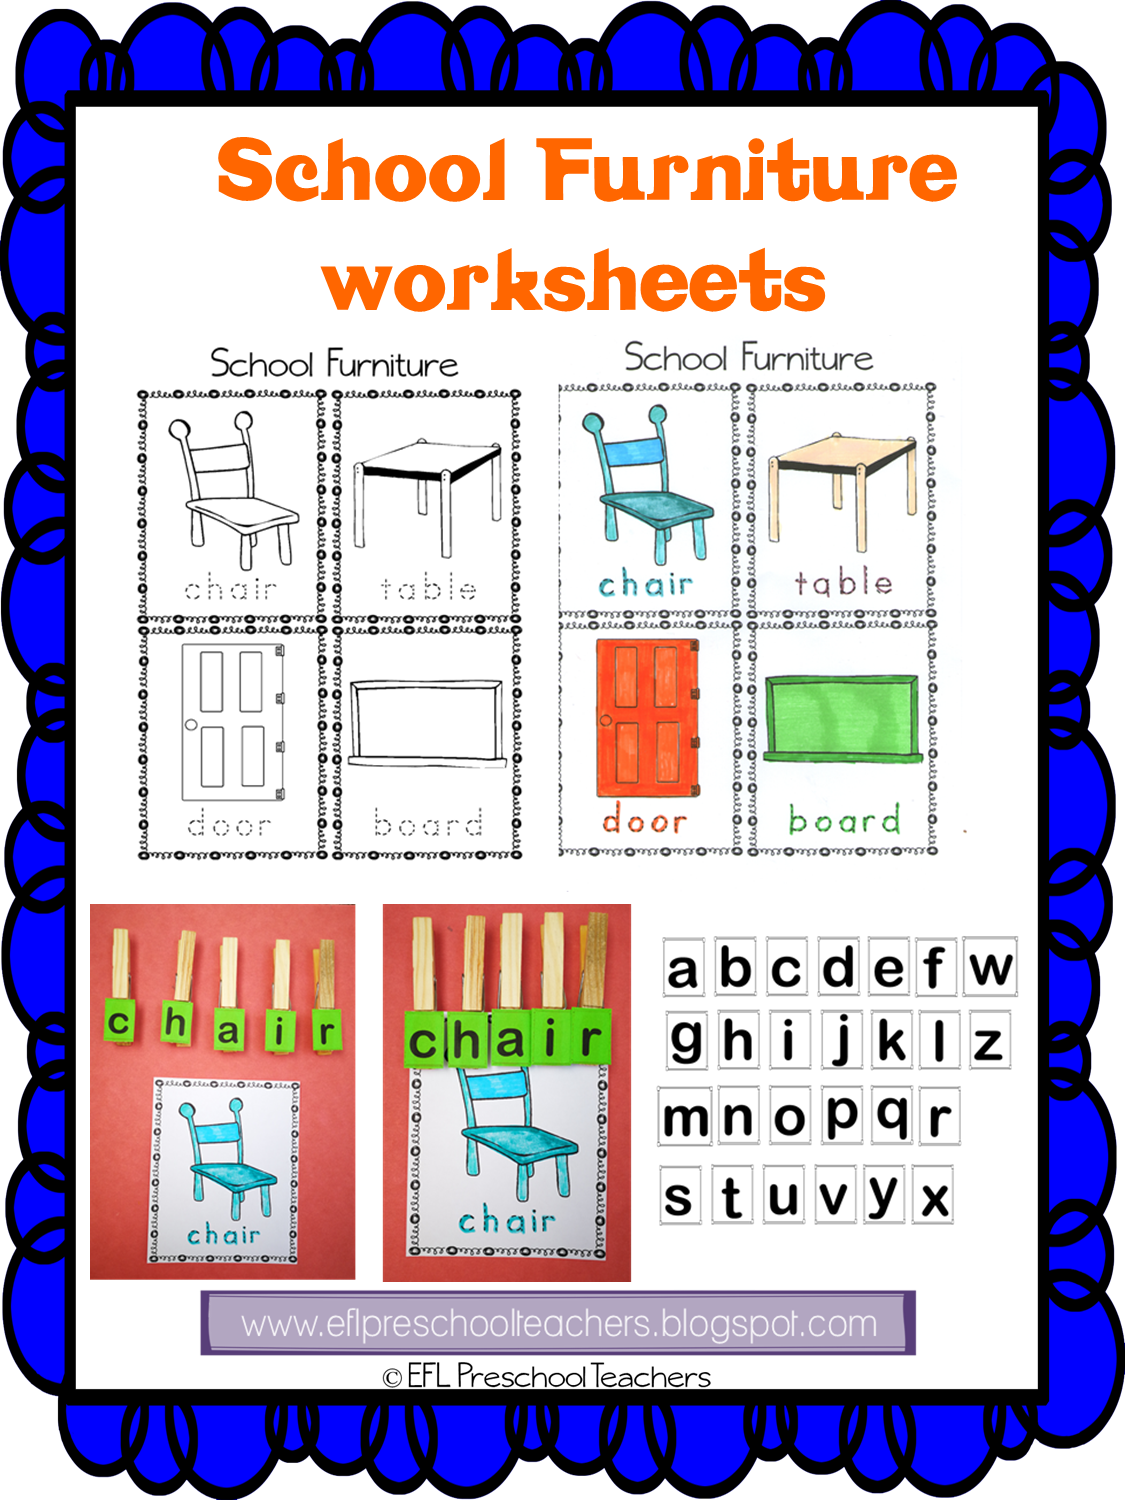 High School Trigonometry Worksheets Excel Eslefl Preschool Teachers Two Step Word Problems Worksheet Word with Non Cash Charitable Donations Worksheet Pdf This Other Worksheet Is A Color By Number It Is Fun Way To Review Colors  And Color Words It Does Benefit Children As They Have To Read Or Listen To  The  Push Or Pull Worksheet Excel